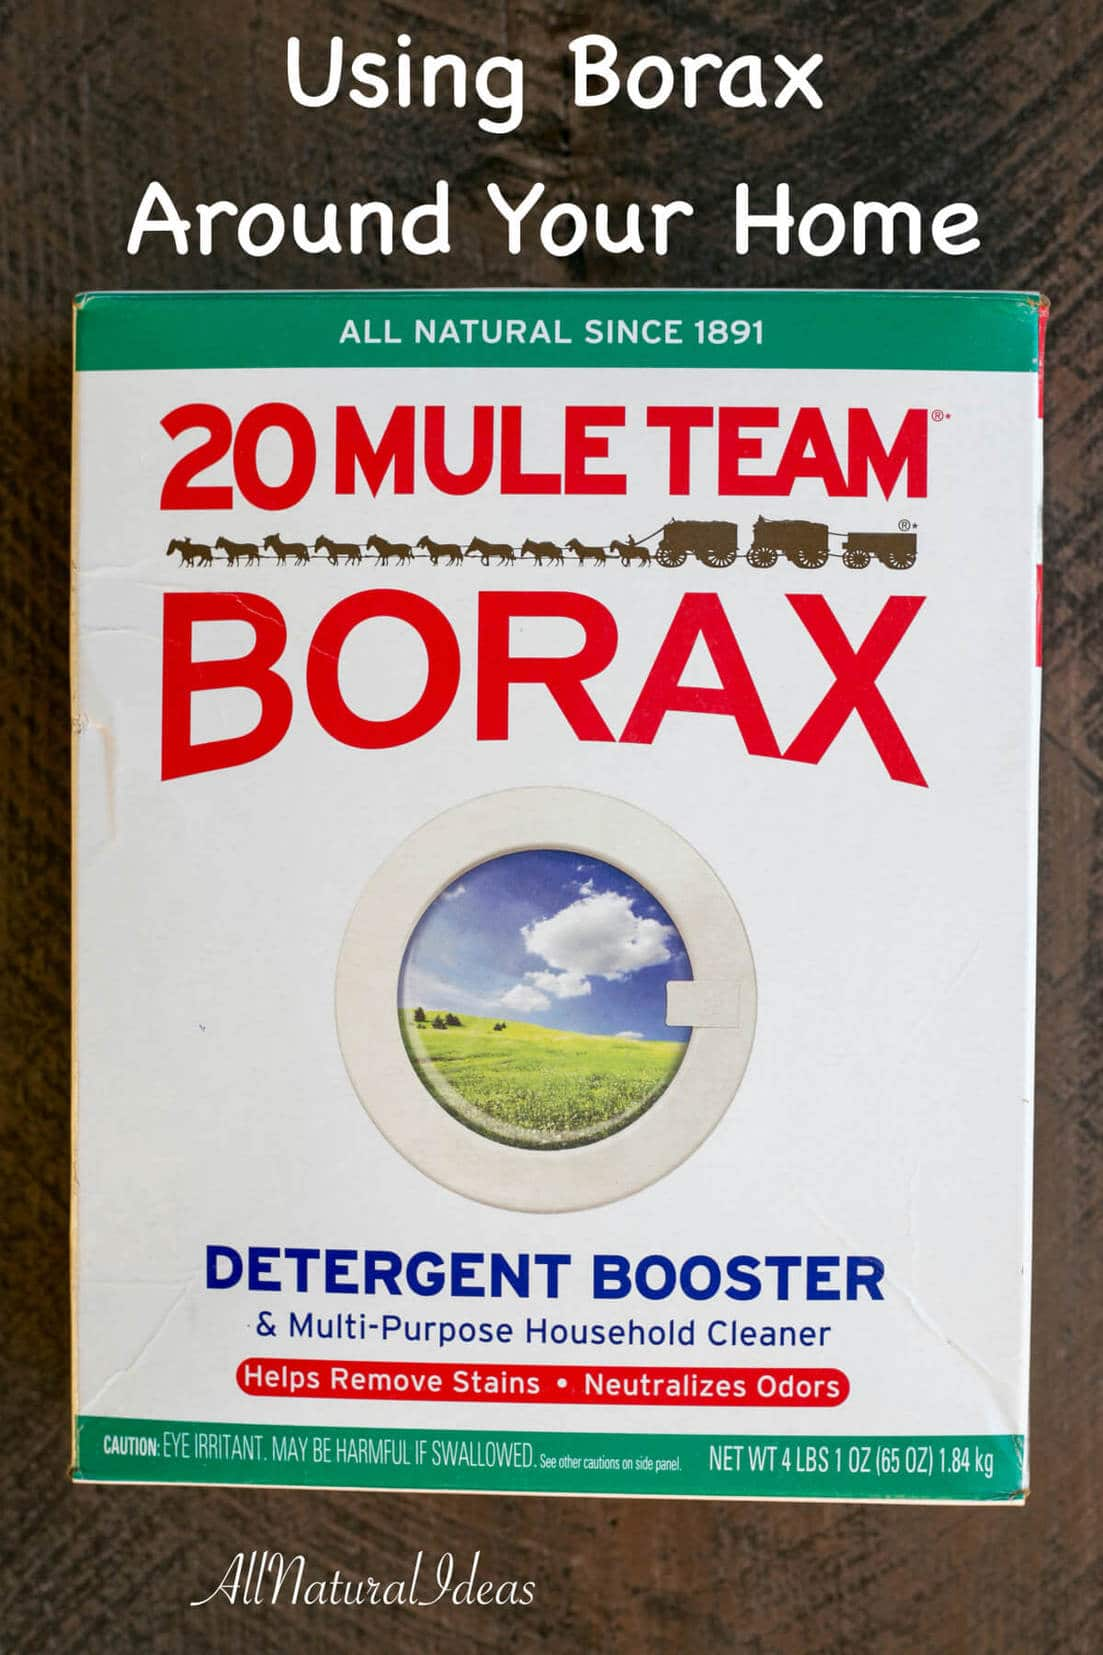 borax home uses